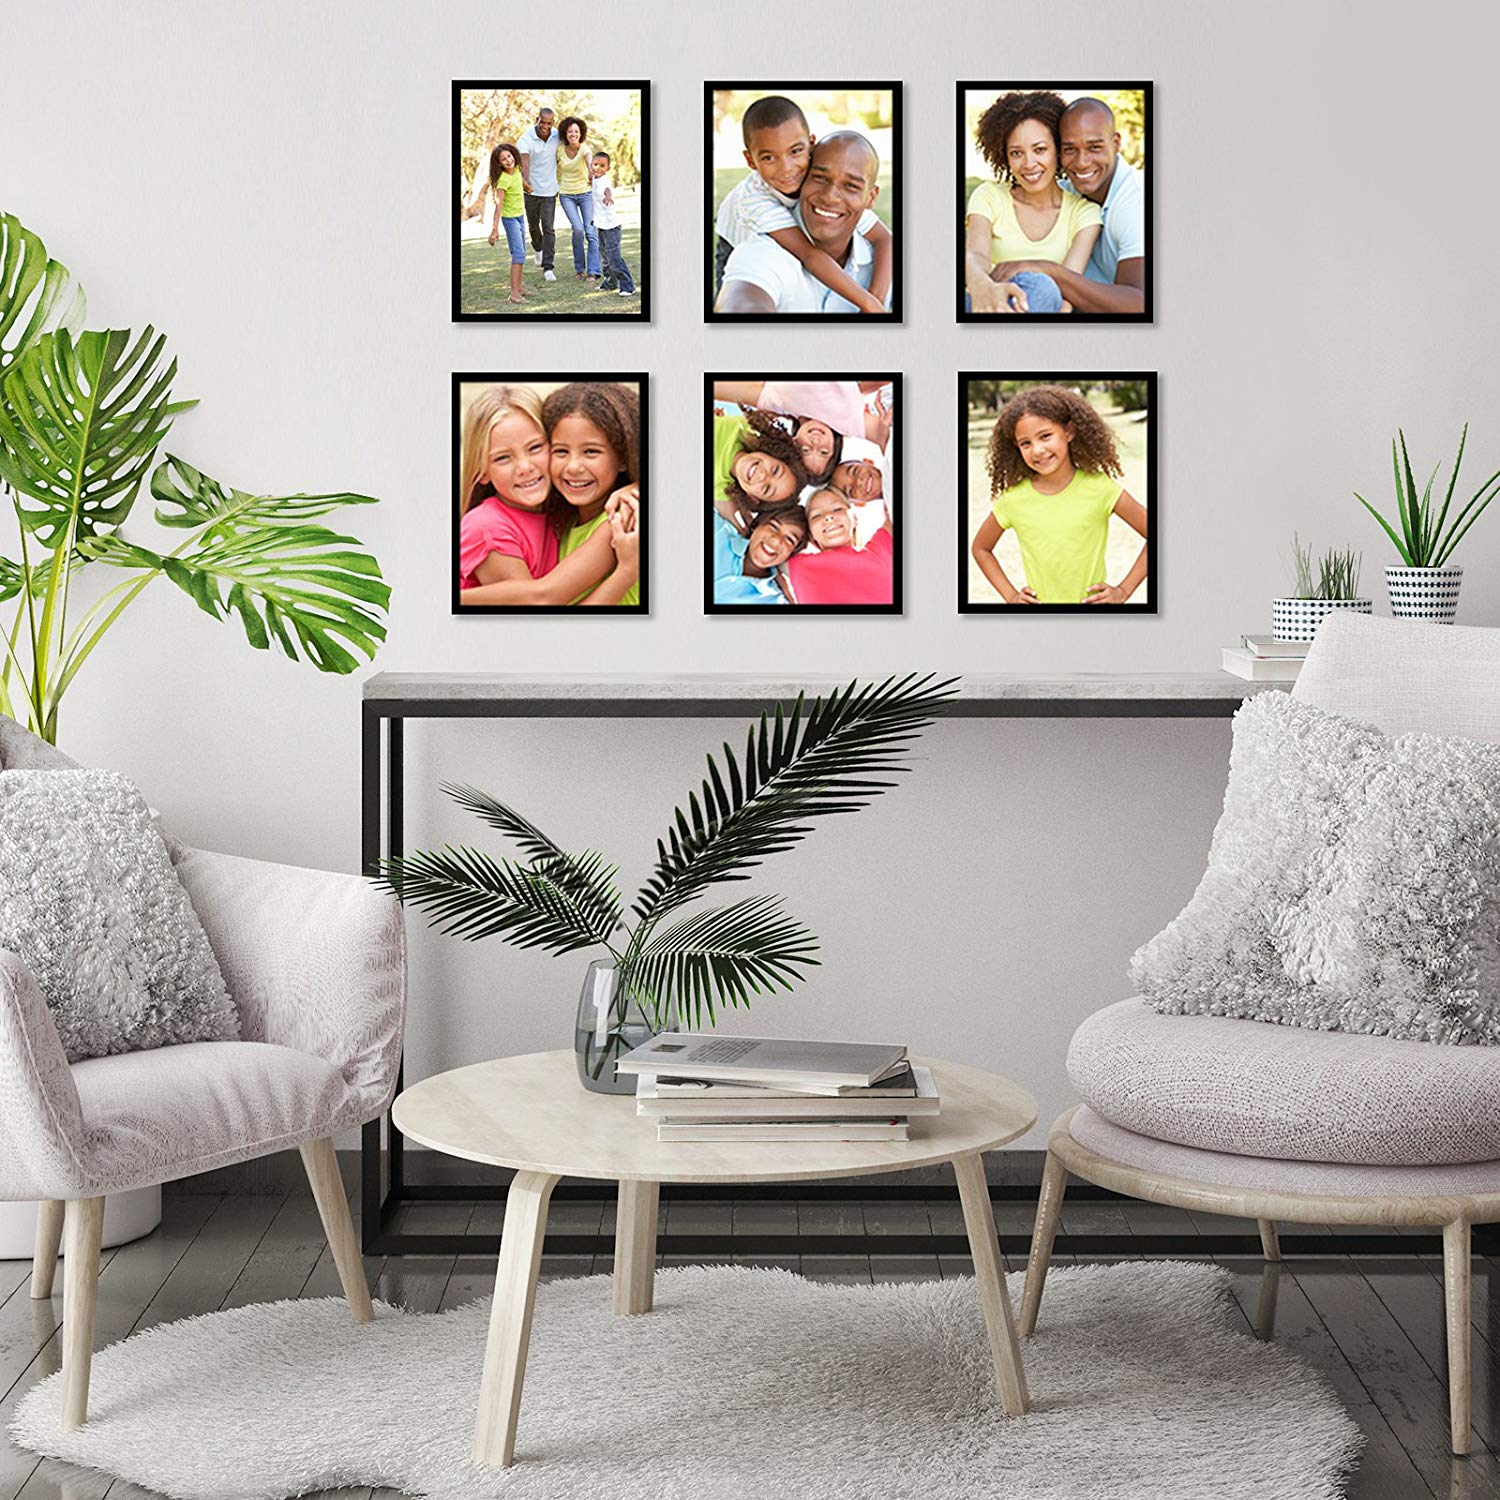 miniature 20 - Americanflat Picture Frame Black Plastic 4x6 5x7 8x10 Wall Tabletop 6 or 12 Pack